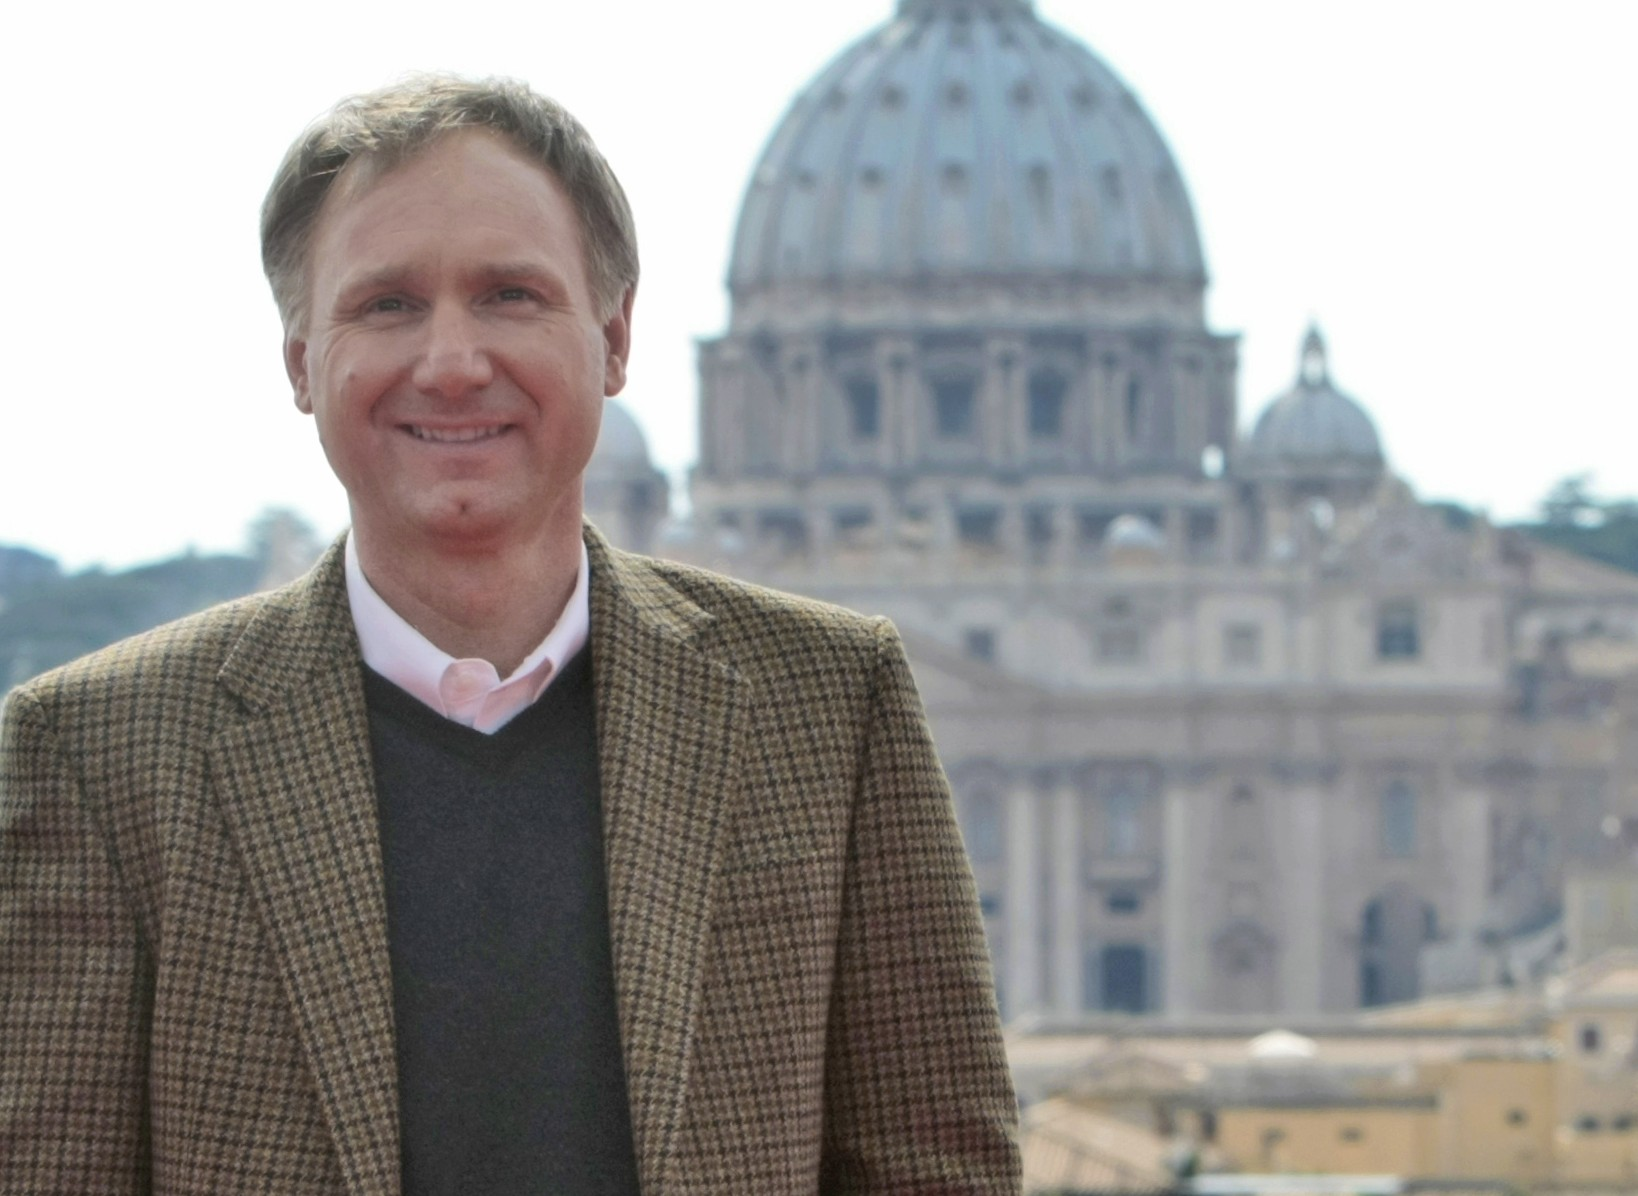 Dan Brown to release new book Inferno in May